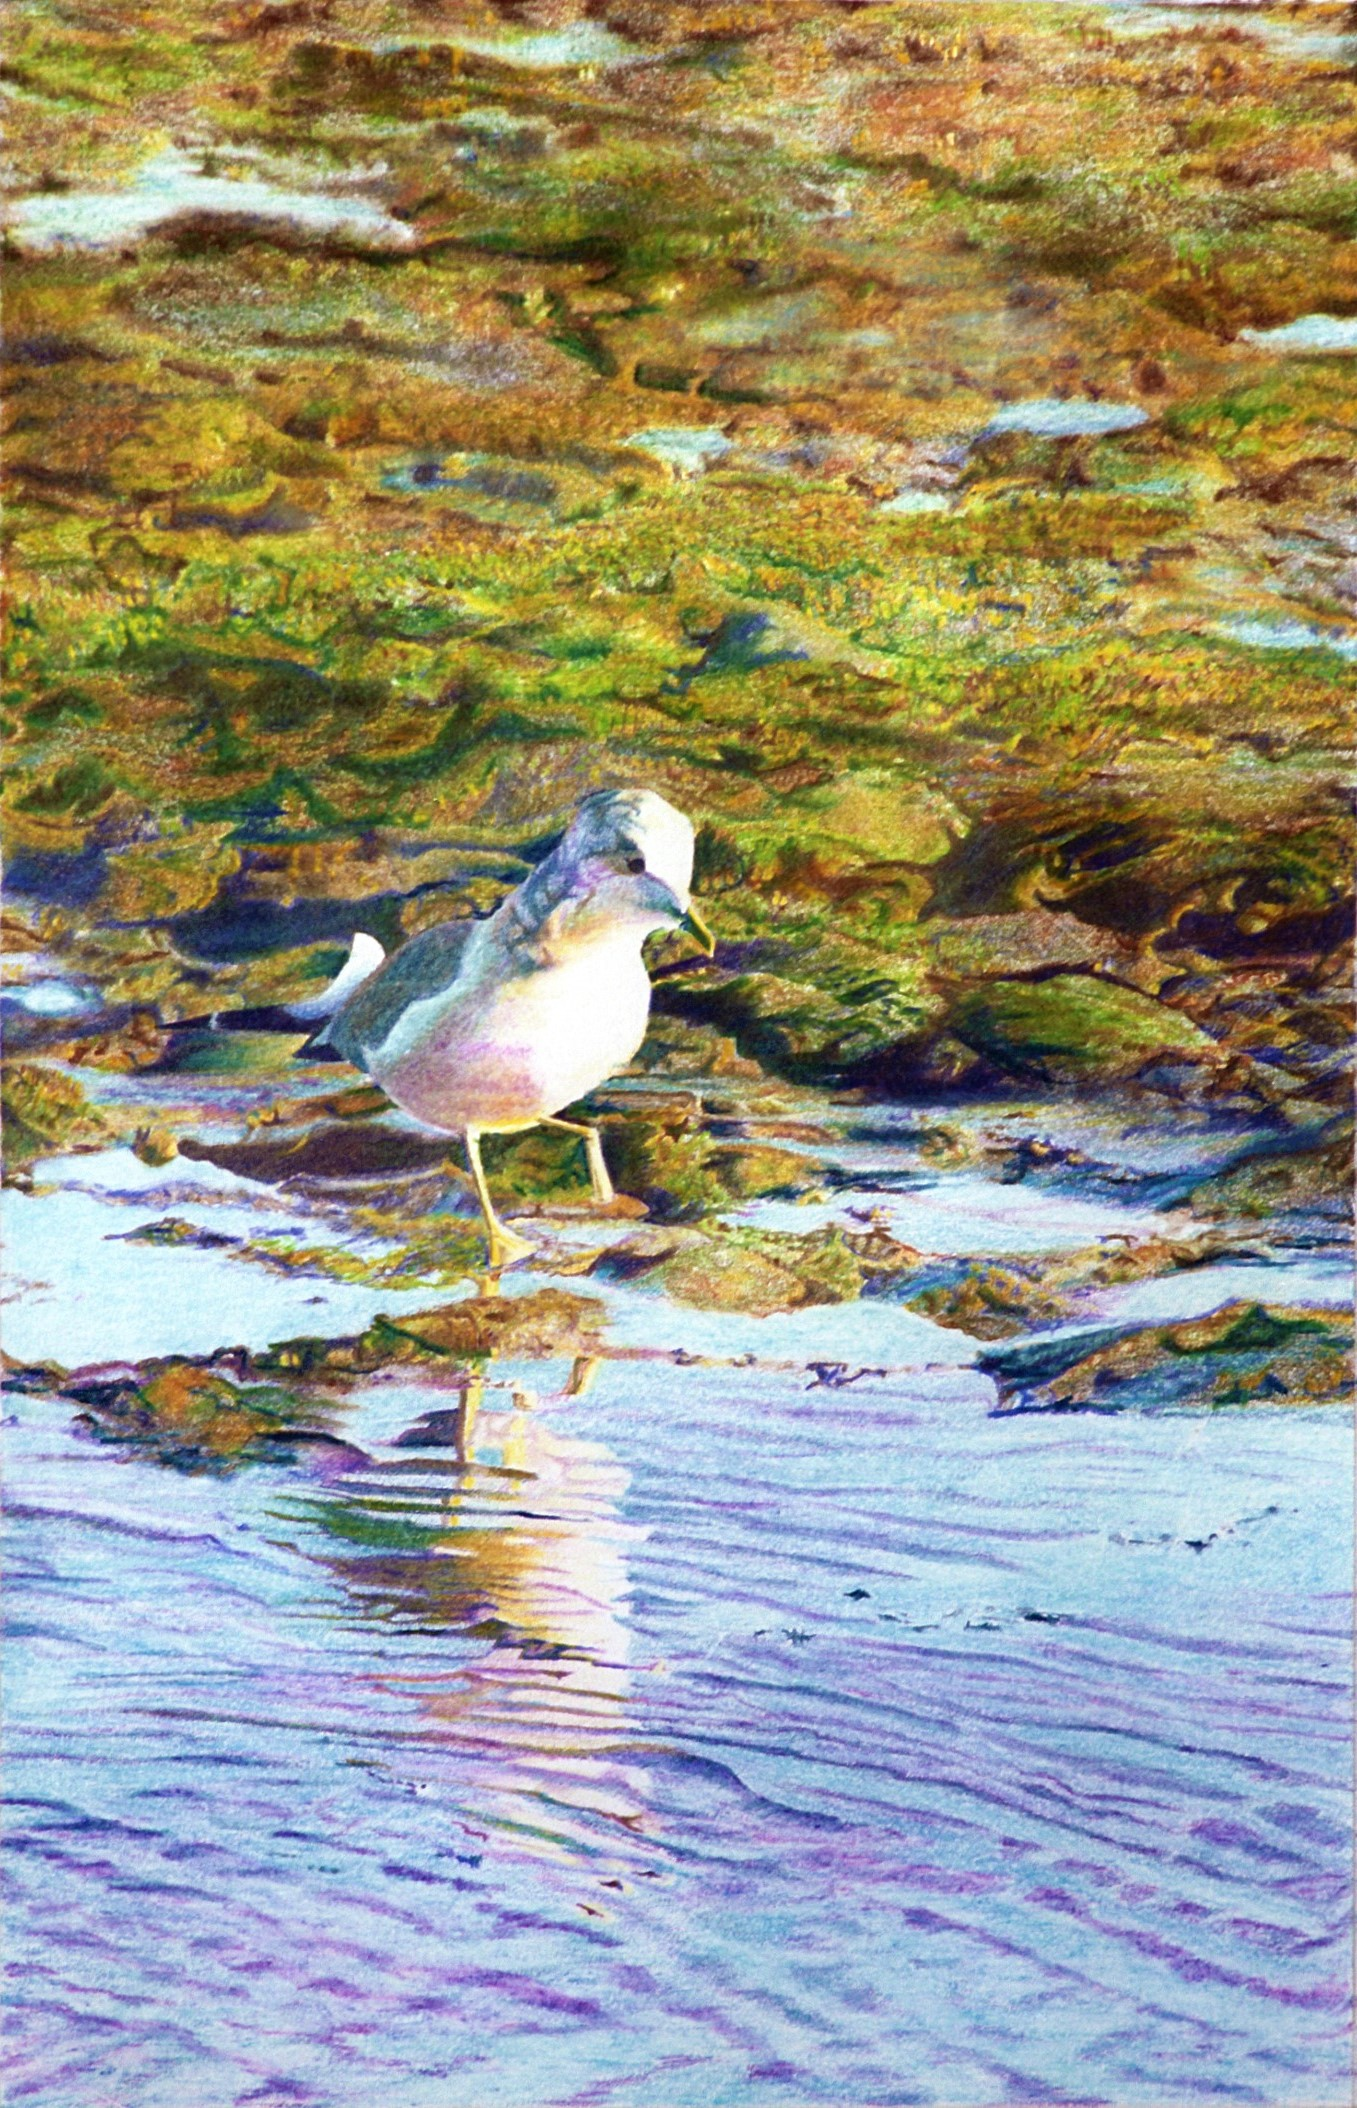 Purnam's Seagull  Colored pencil on paper. 10 x 15 in.